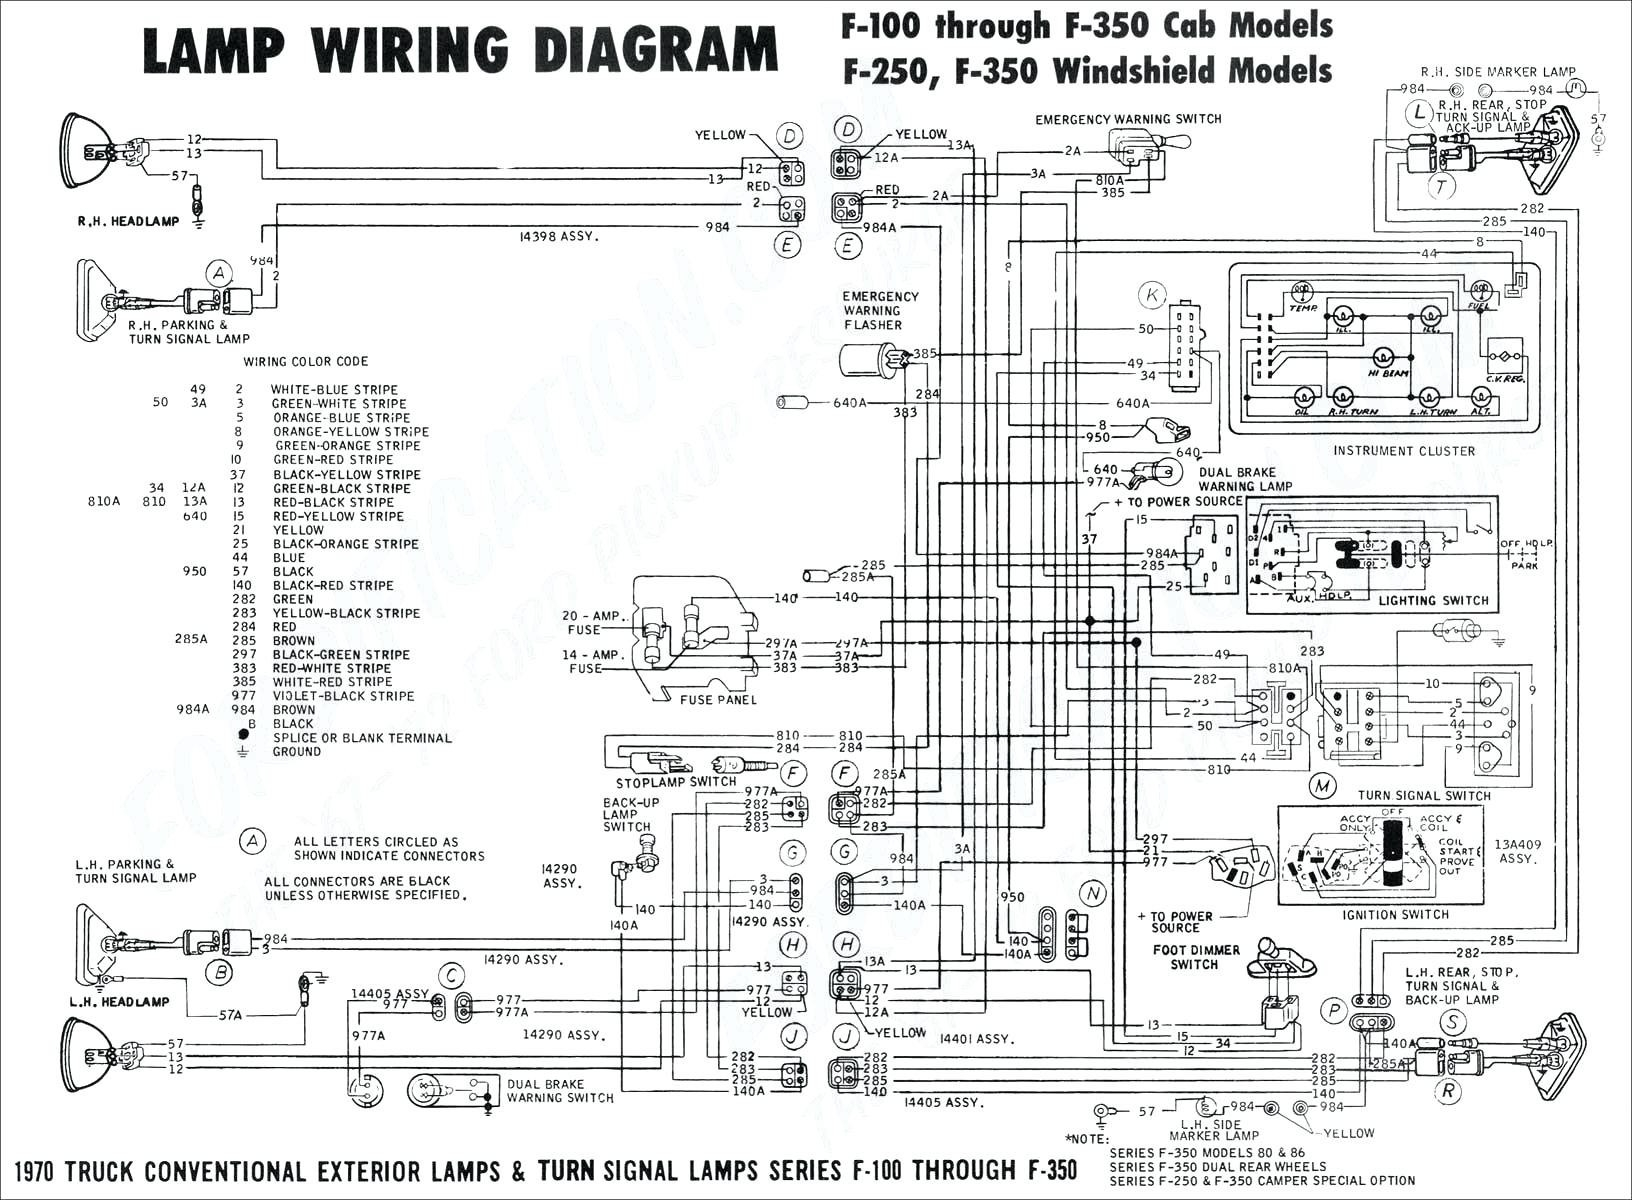 2000 Turn Signal Wiring Diagram 800 Vulcan